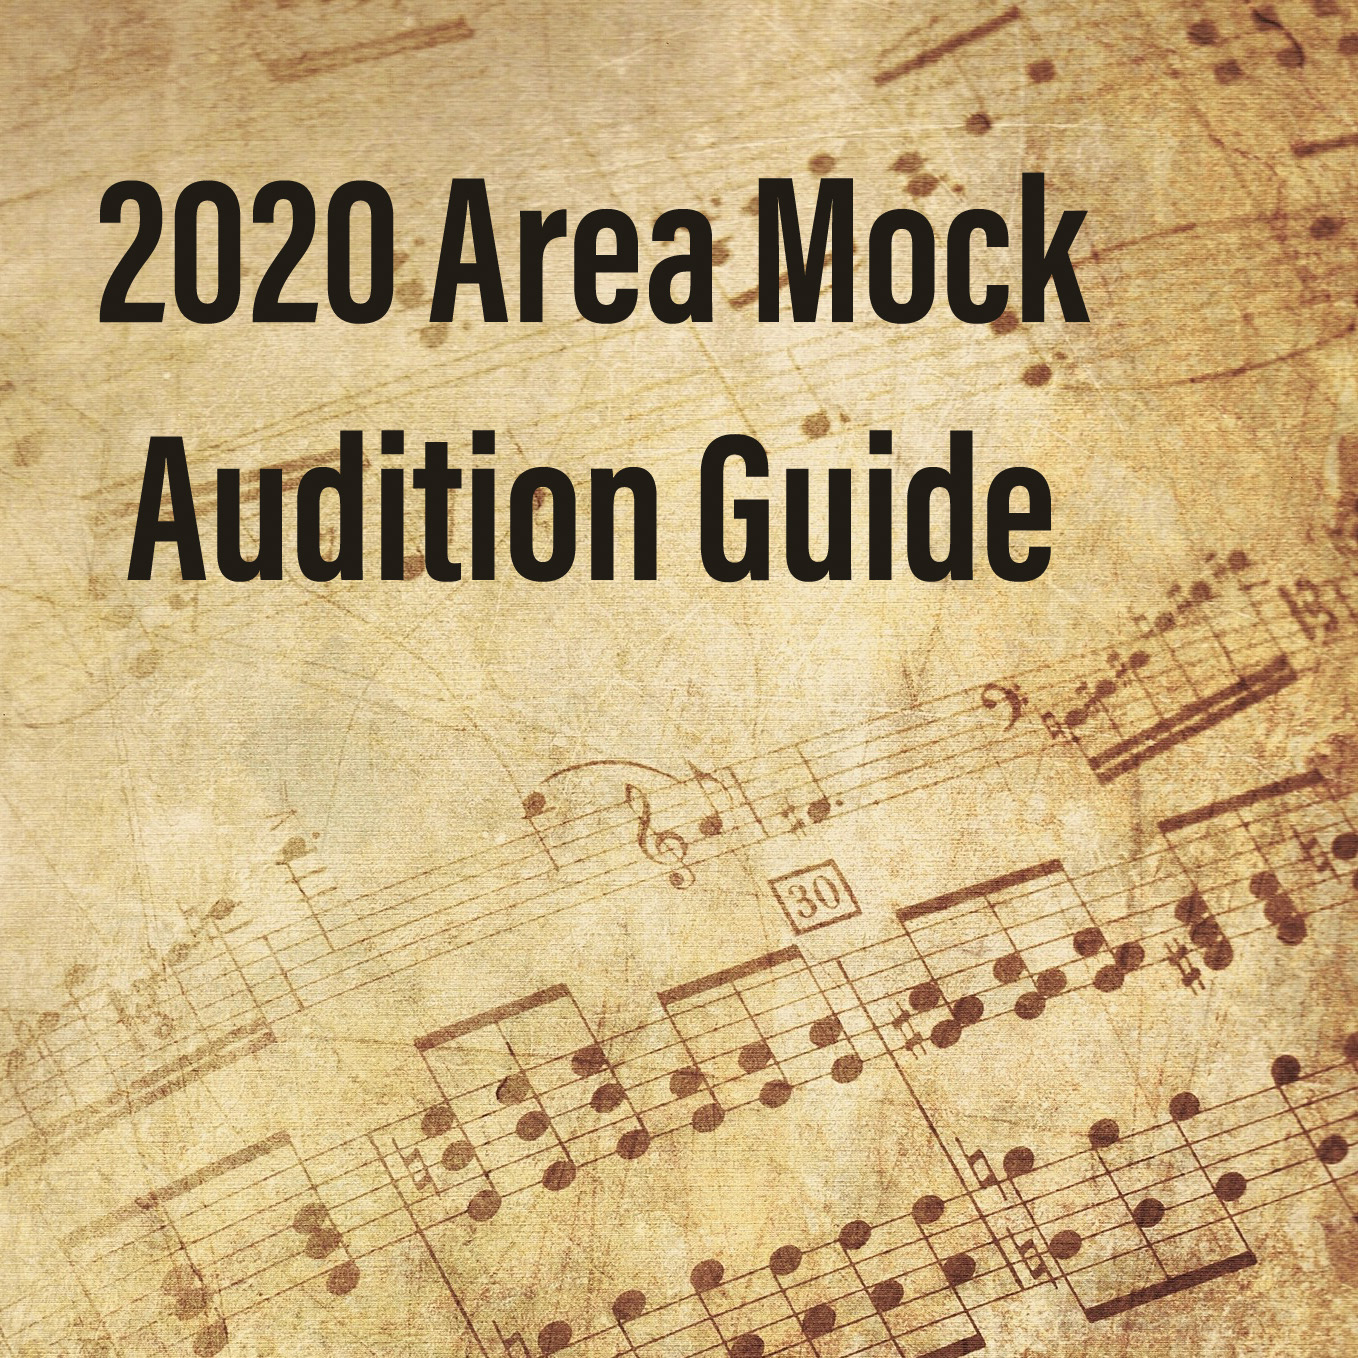 Area Mock Audition Guide